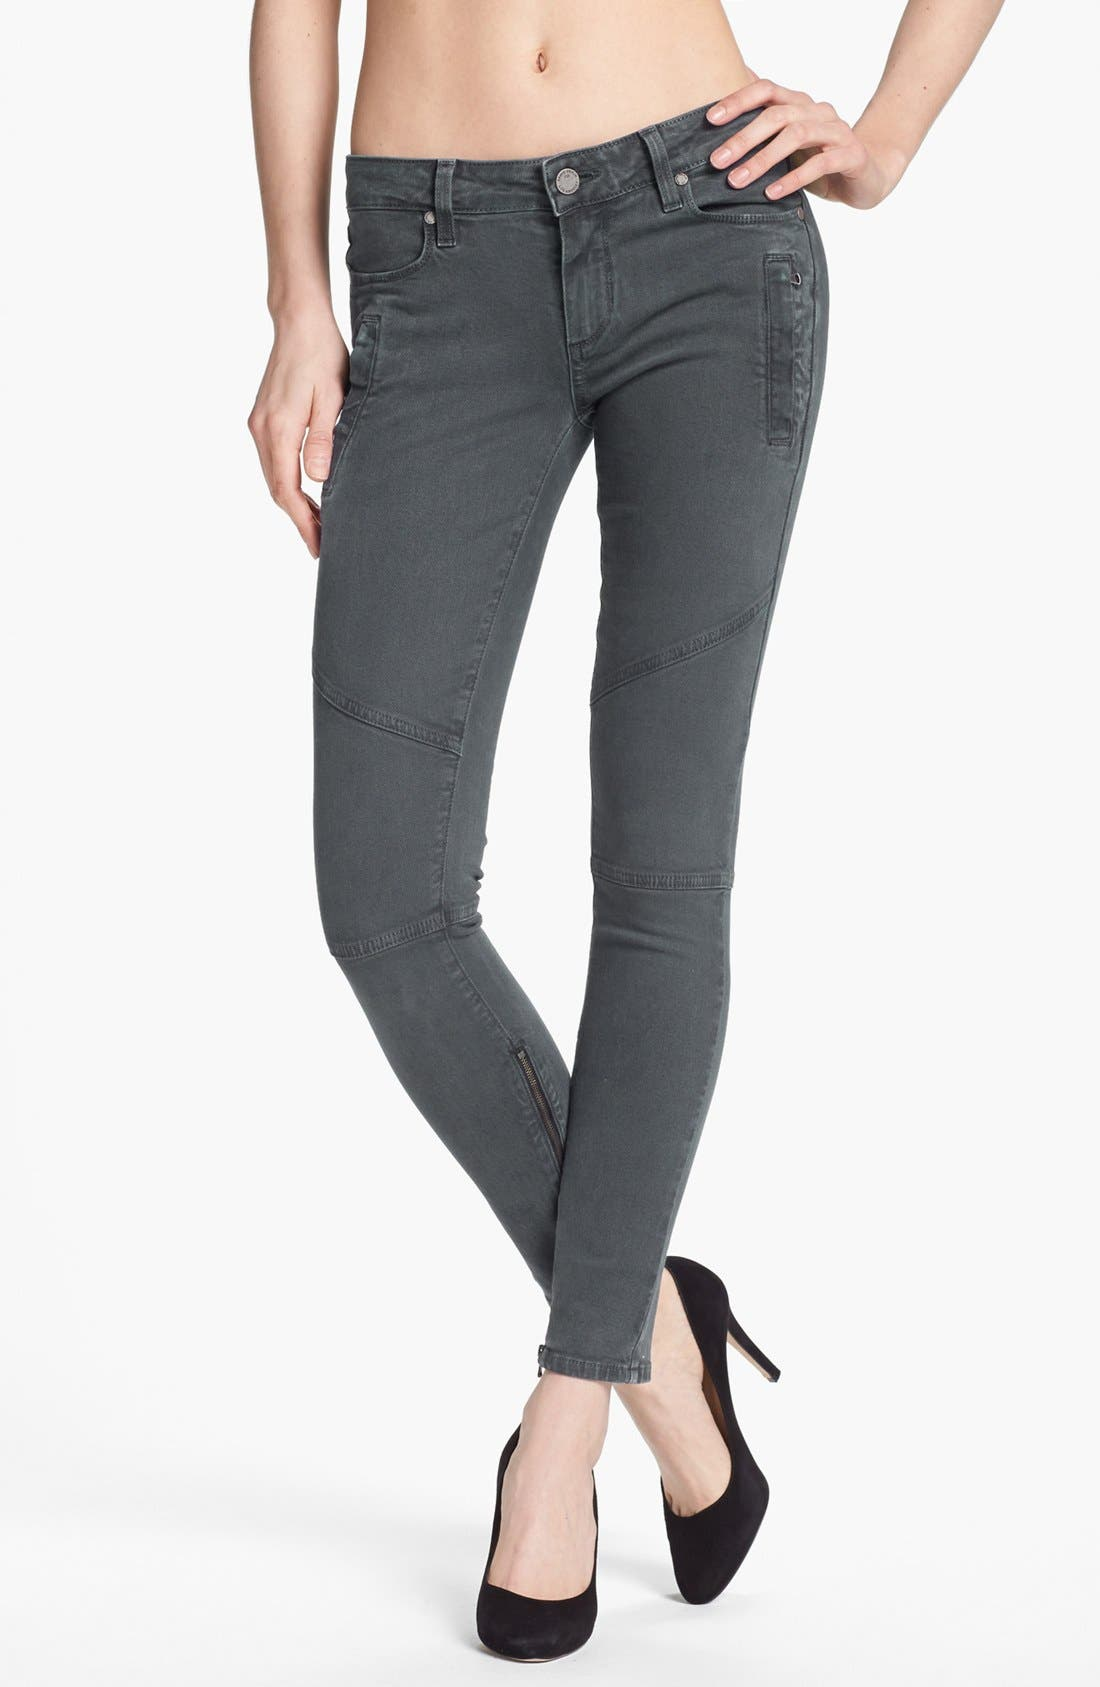 Main Image - Paige Denim 'Marley' Seam Detail Skinny Jeans (Black Current)